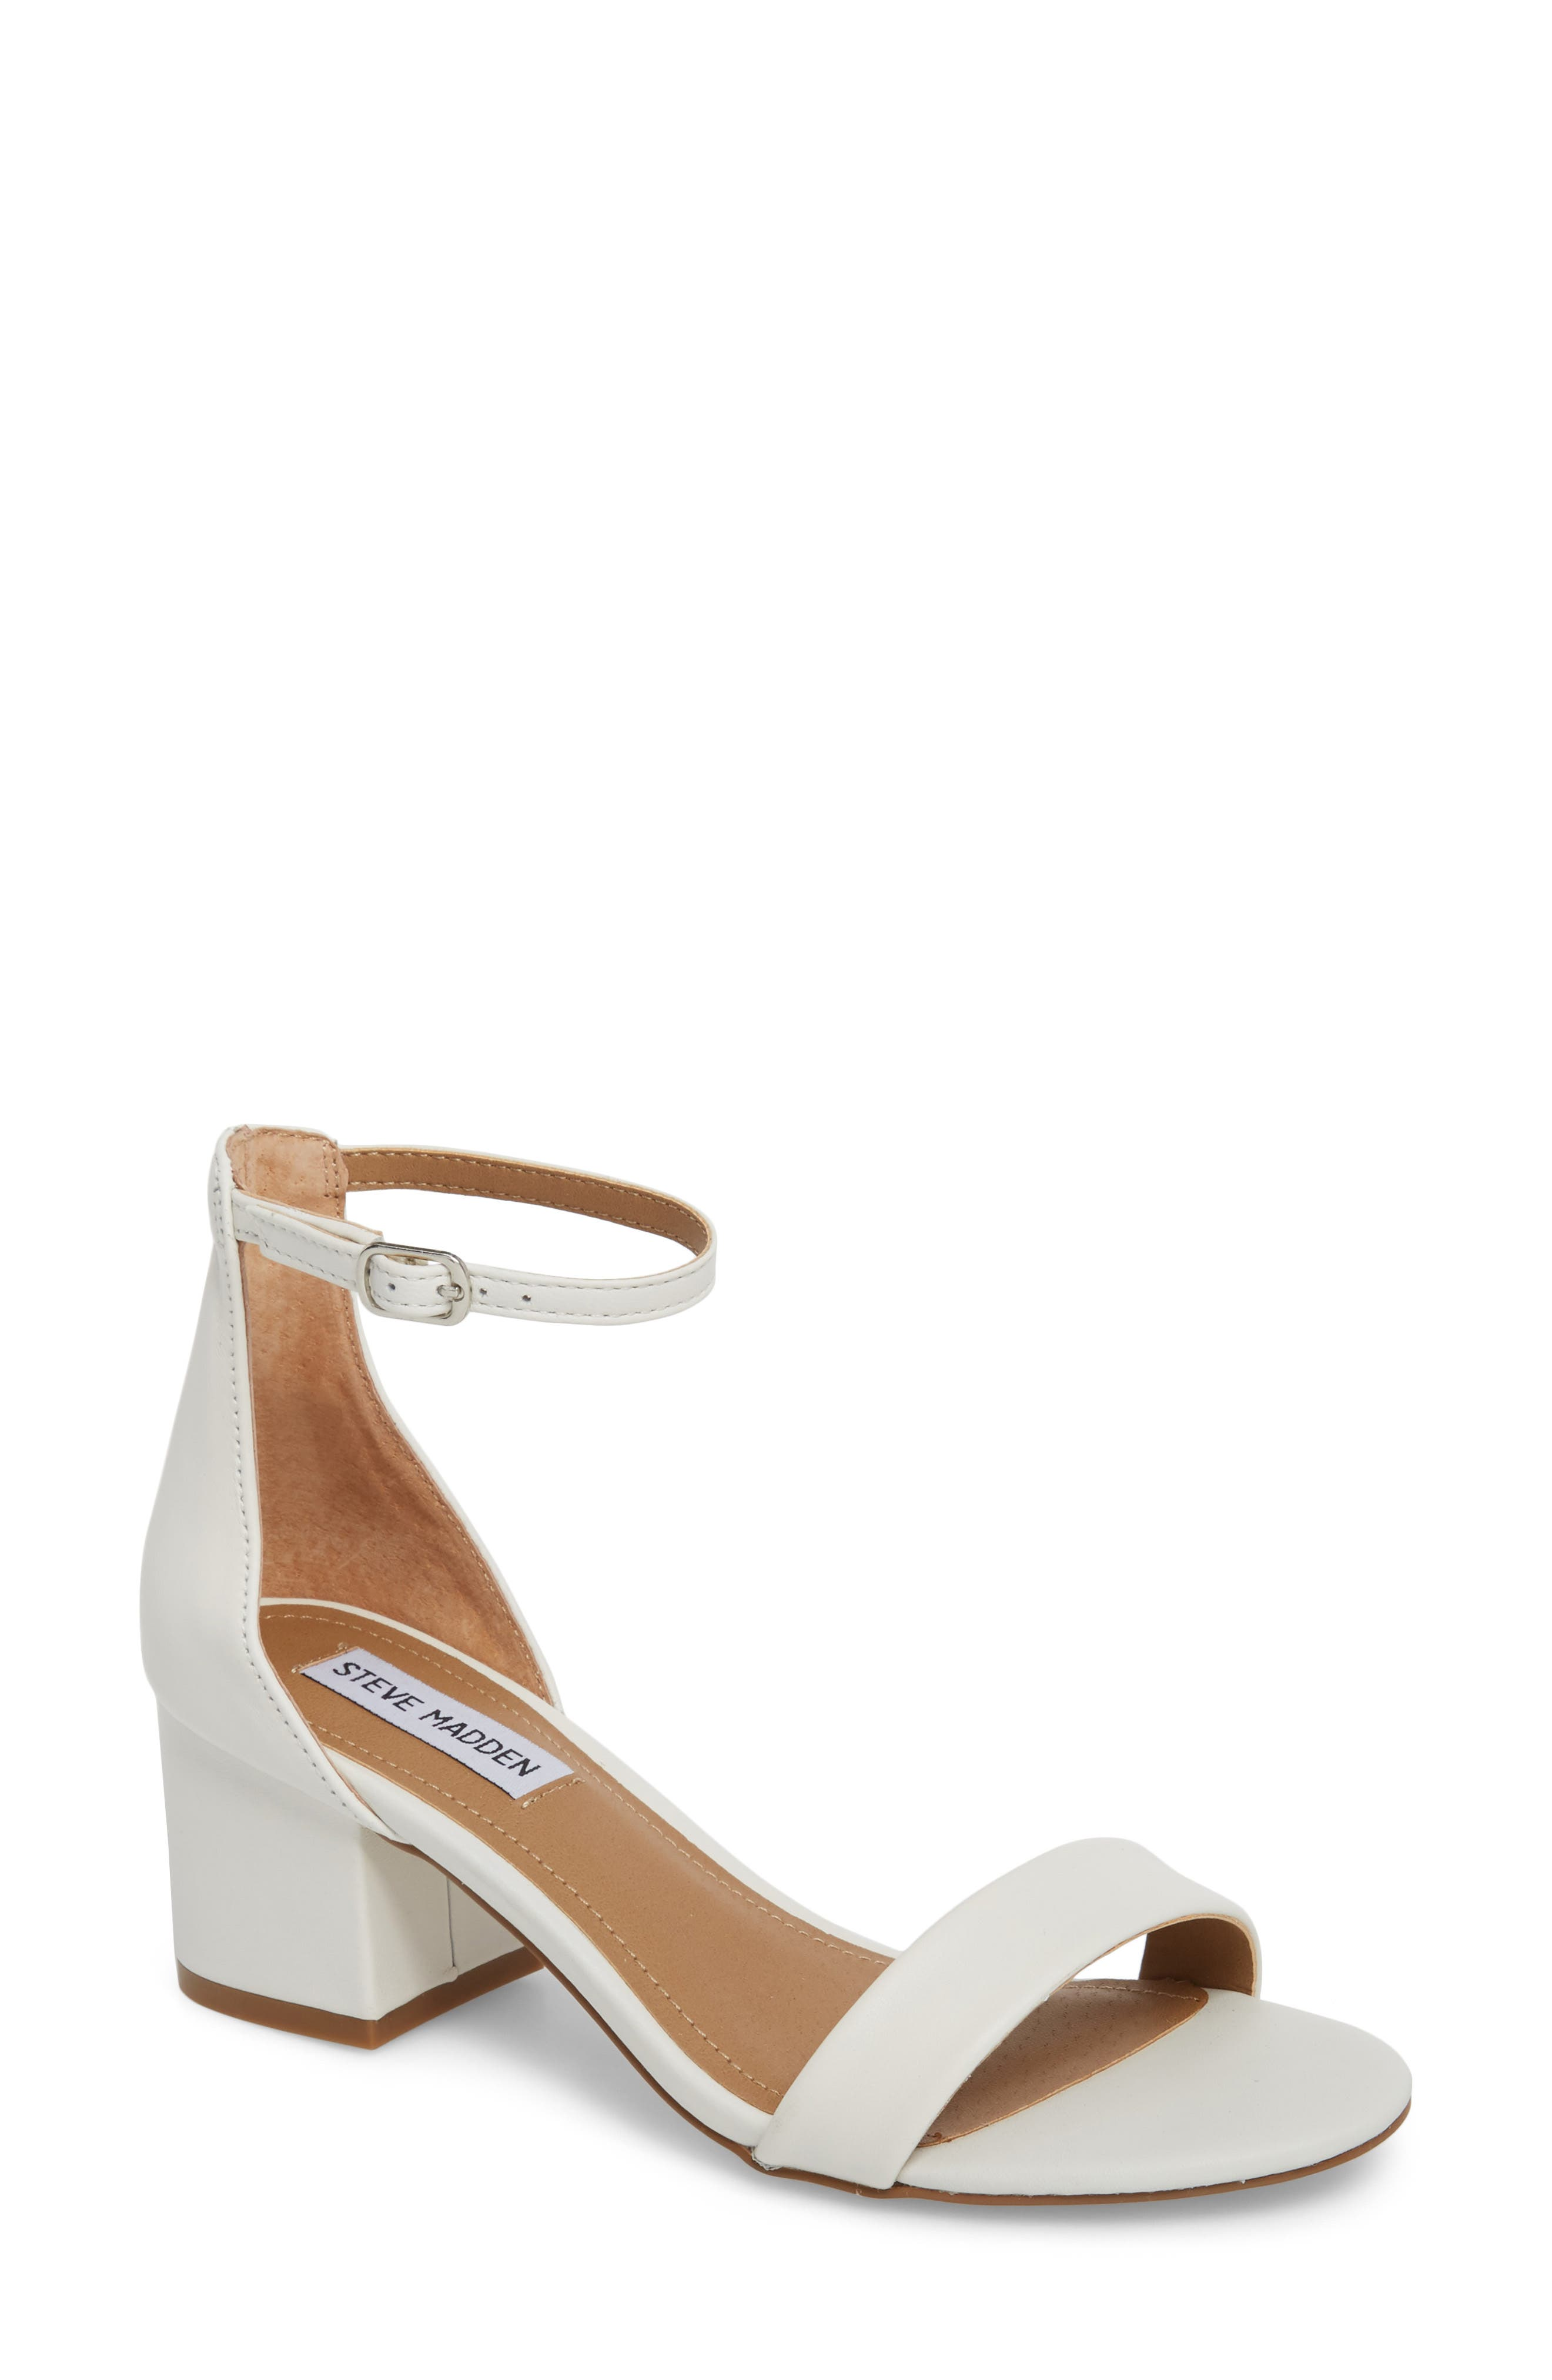 Irenee Ankle Strap Sandal,                         Main,                         color, WHITE LEATHER